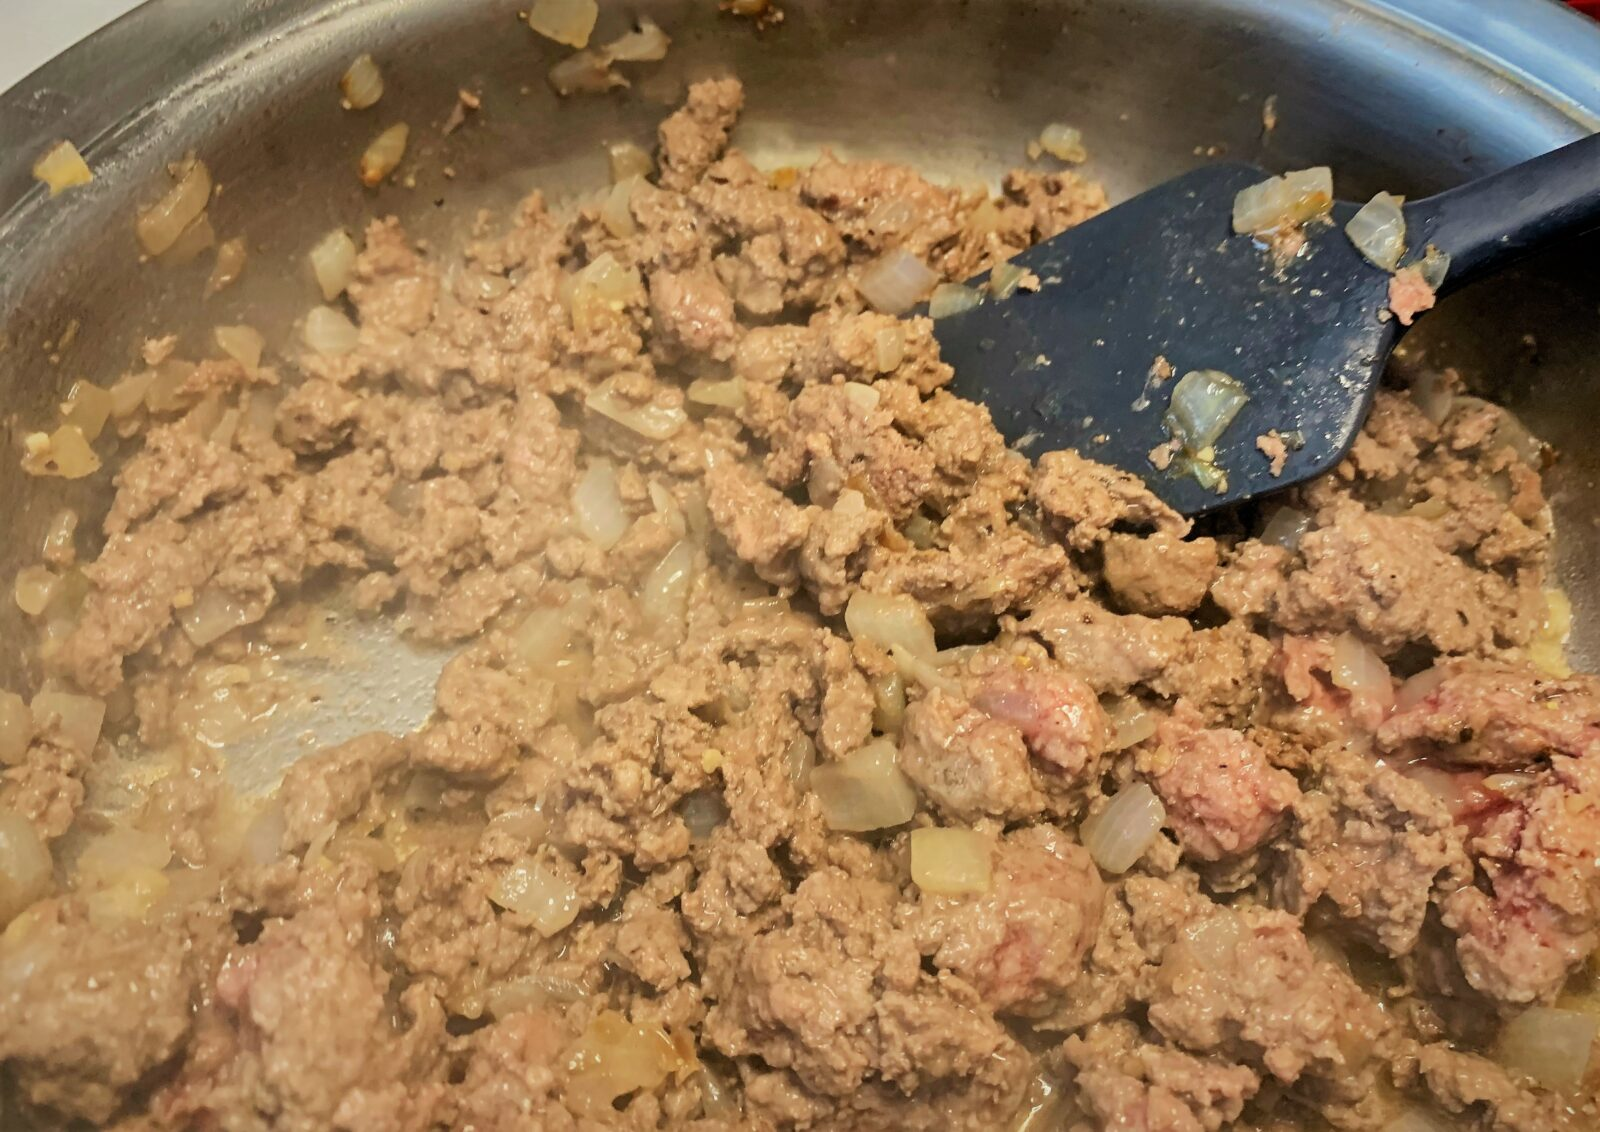 Browning our ground beef